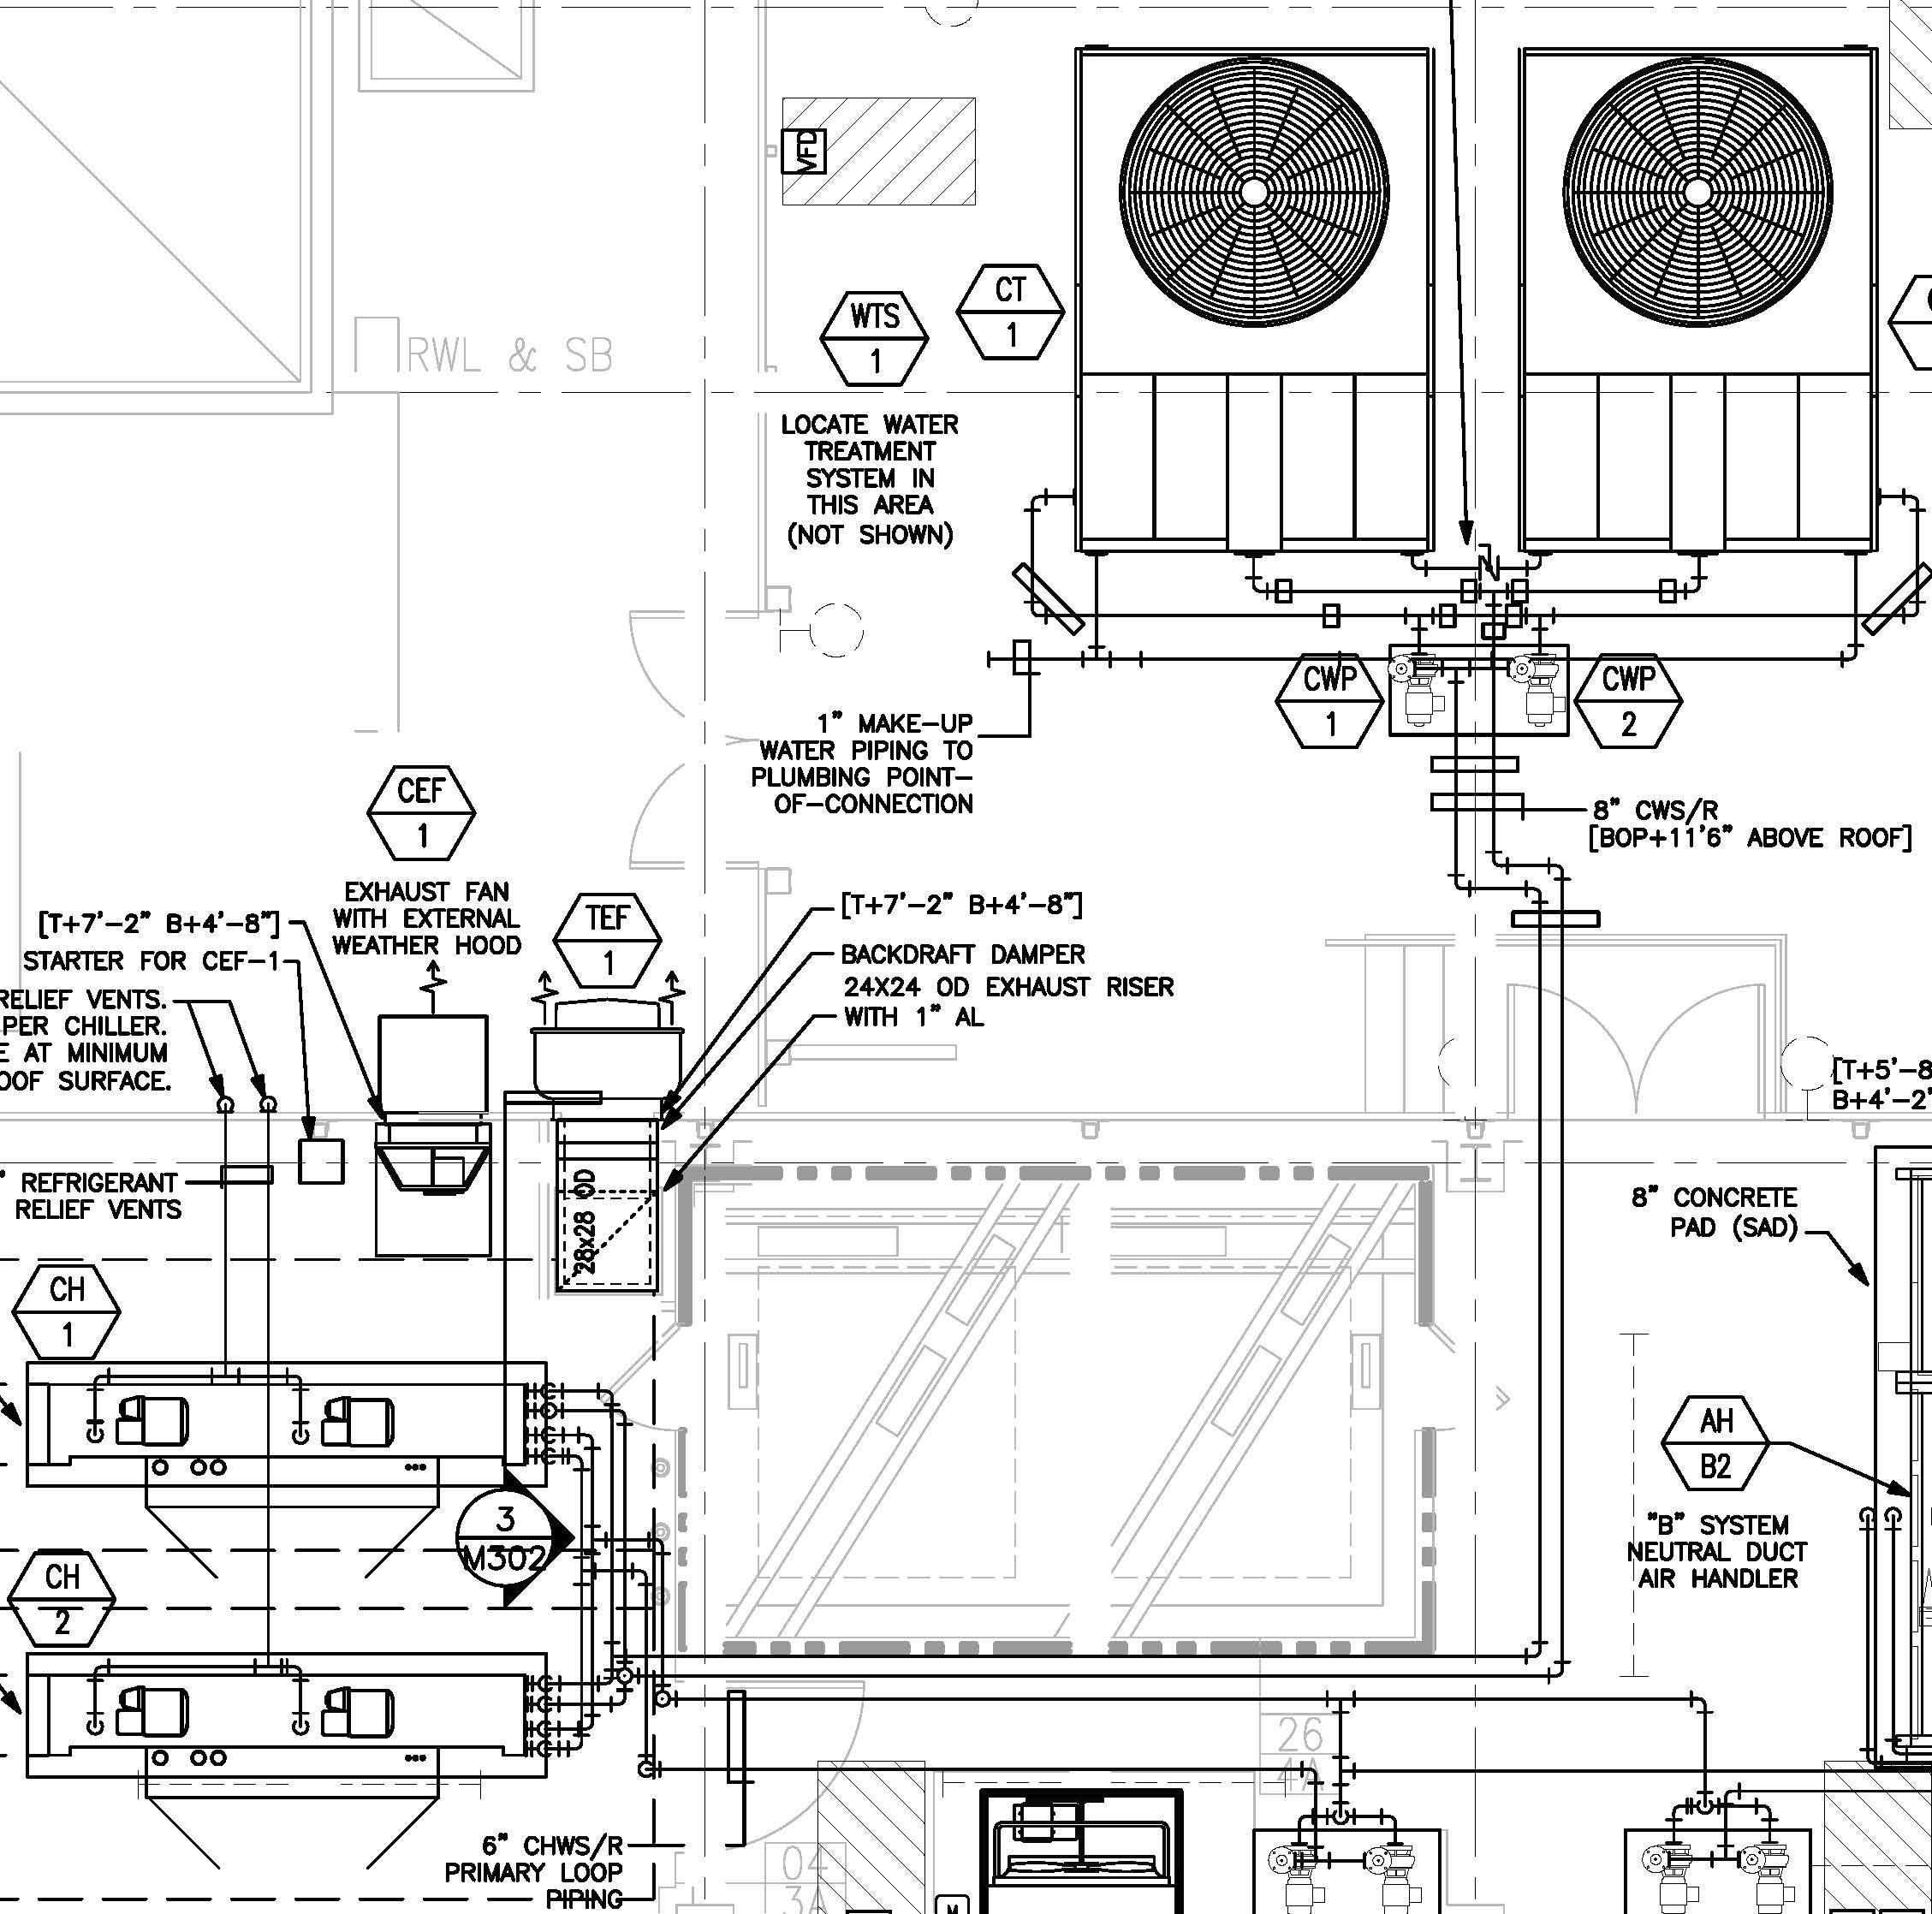 york condensing unit wiring diagram Download-Hvac Condenser Wiring Diagram New Air Conditioning Condensing Unit Wiring Diagram Valid Wiring Diagram 14-t